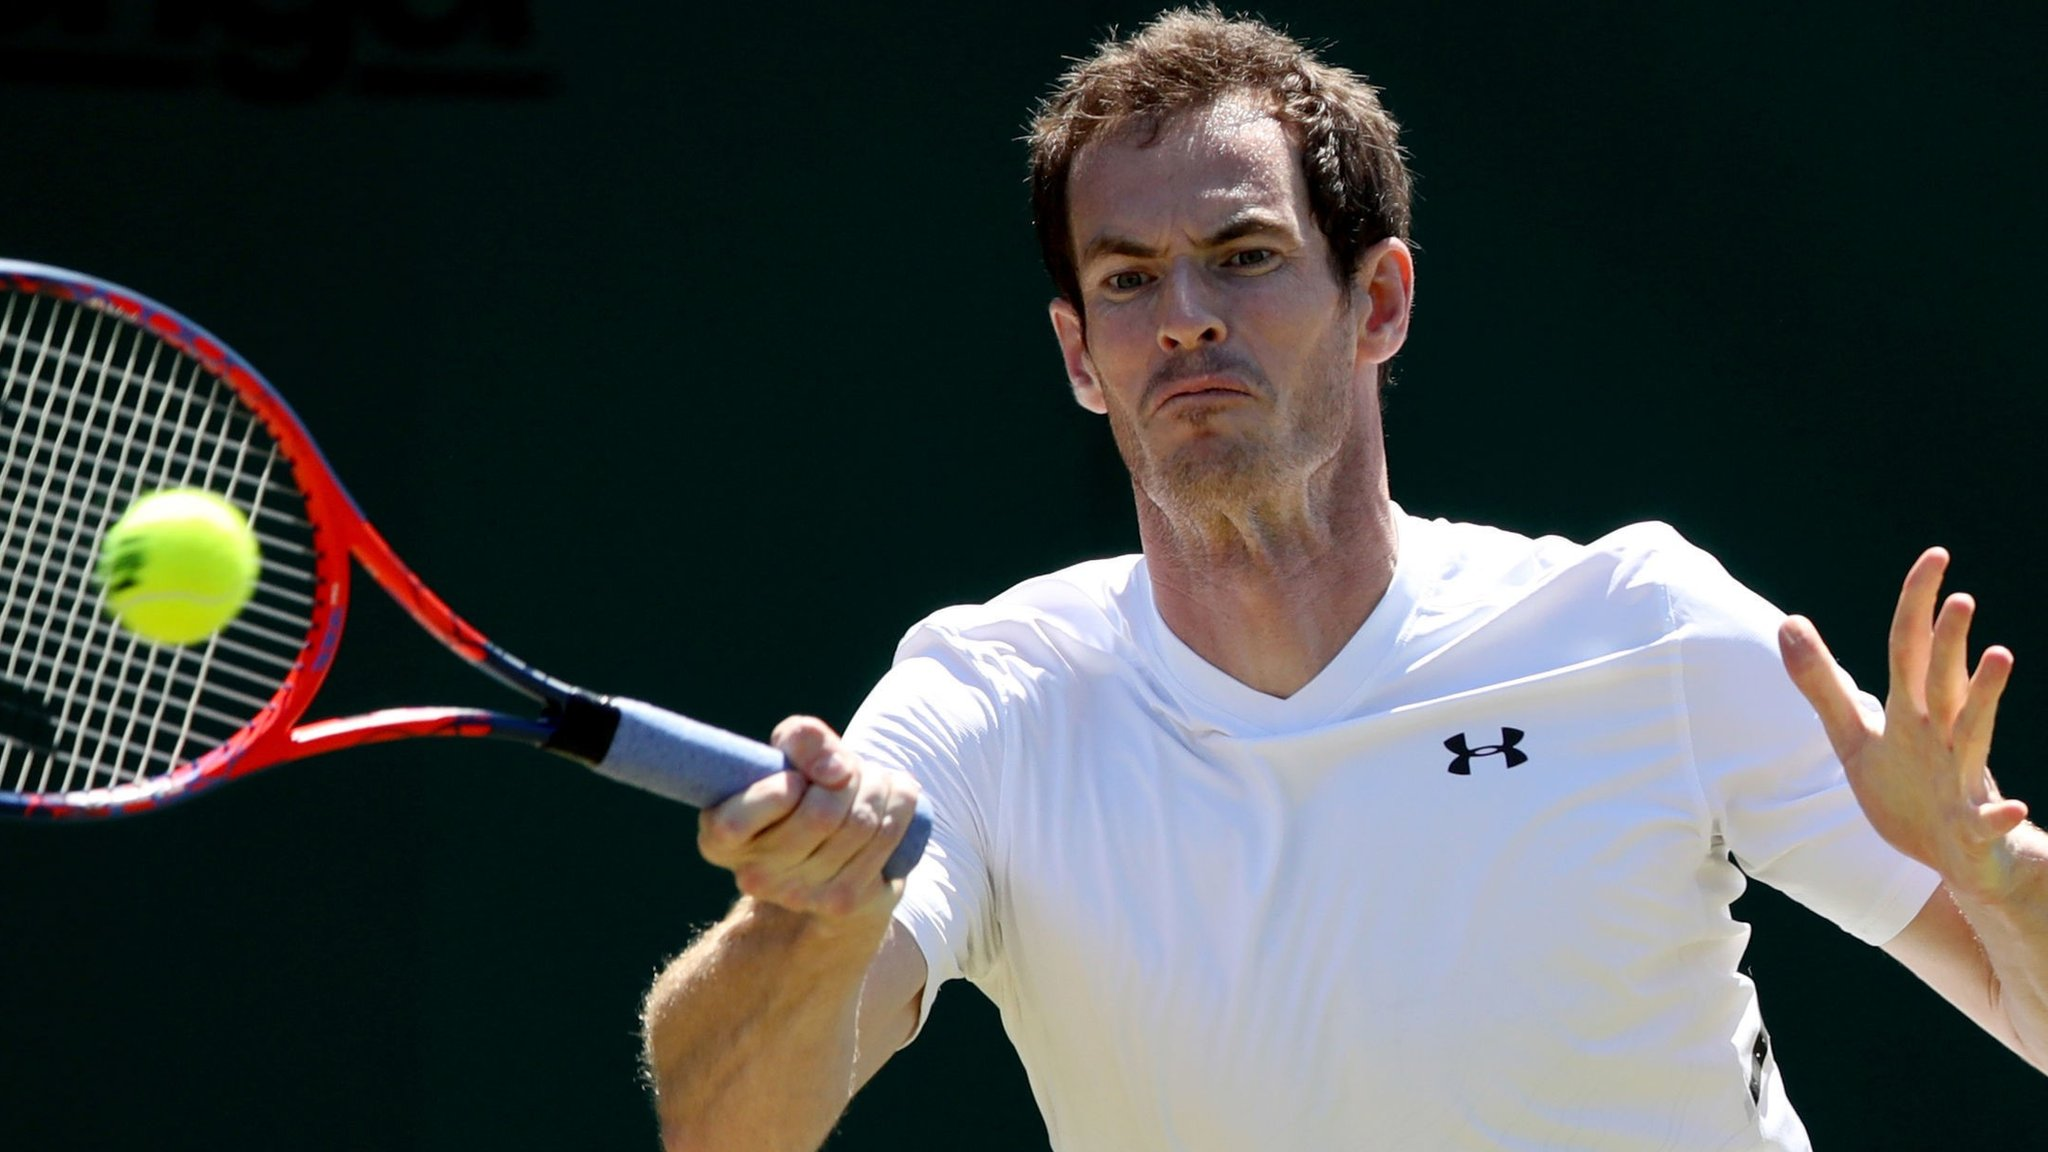 US Open build-up: Murray set for Grand Slam comeback